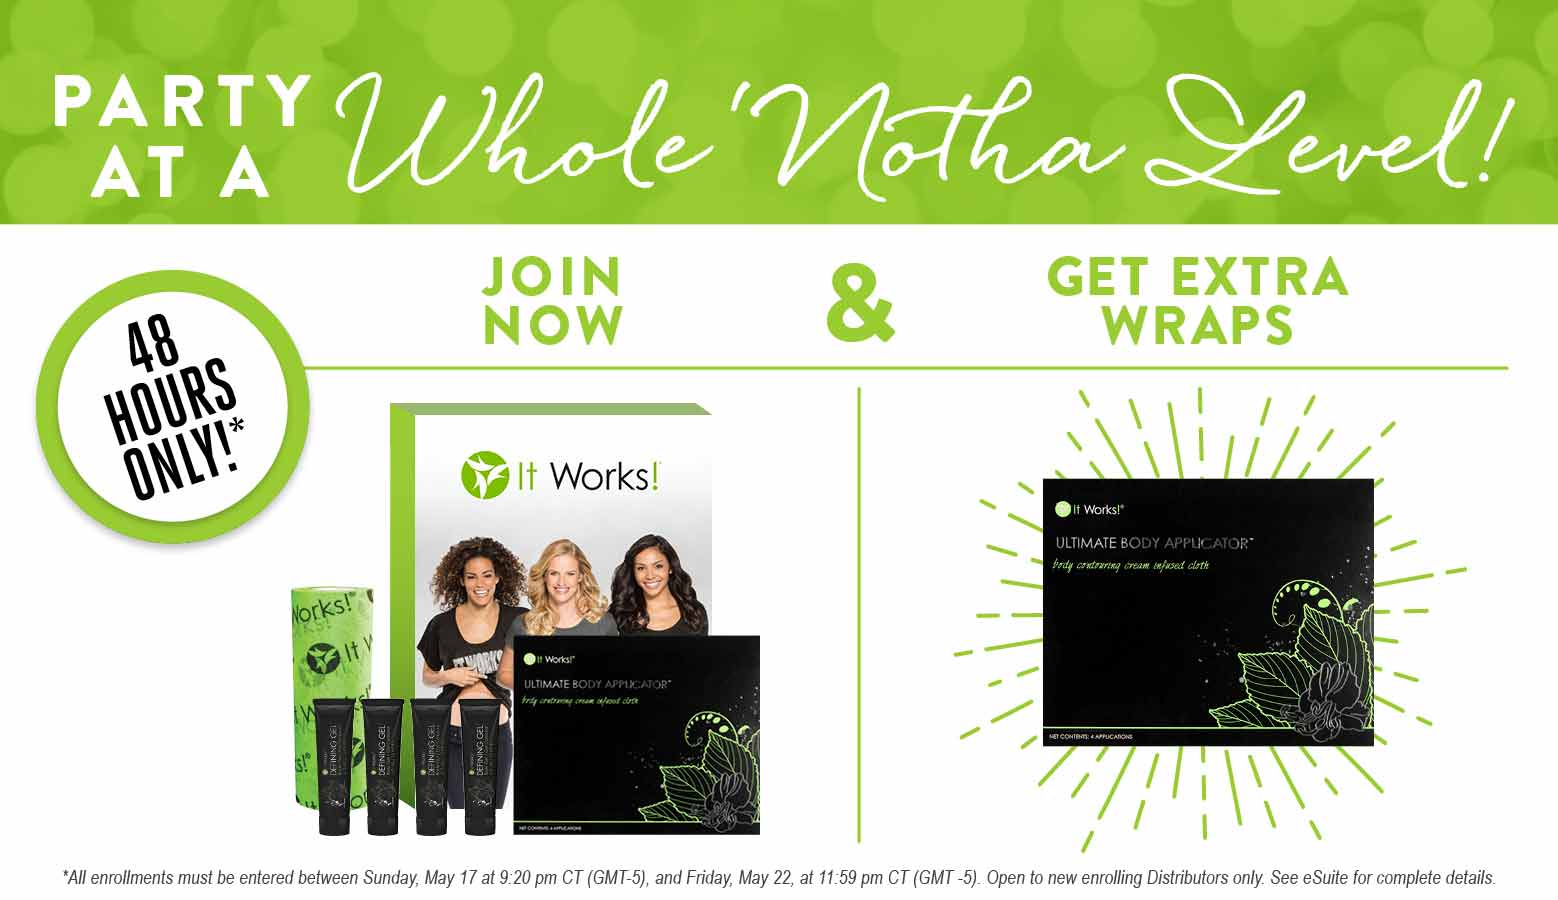 Have you tried that crazy wrap thing it works